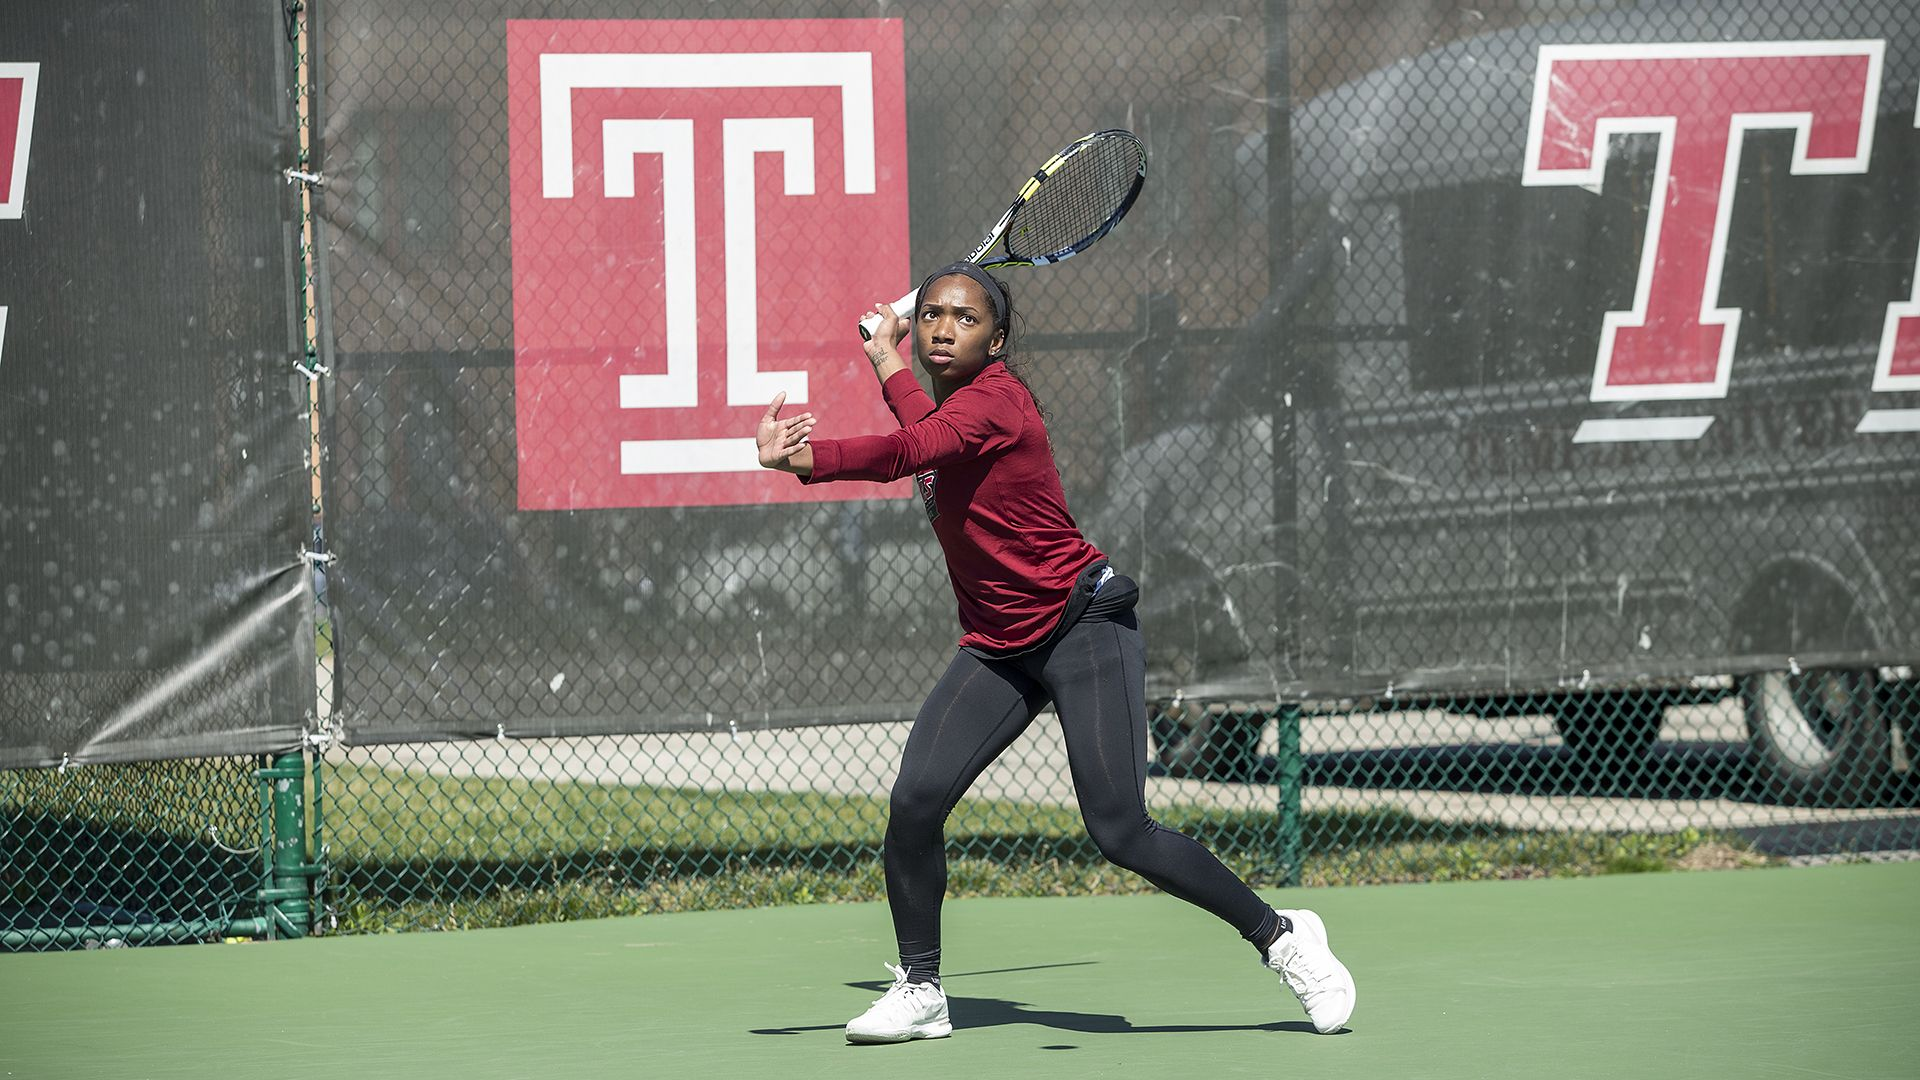 Women S Tennis Defeats Drexel 4 3 In Mid Week Dual Monet Stuckey Willis Posted Wins In Both Doubles And Singles To Lead T Womens Tennis Athlete Tennis Match